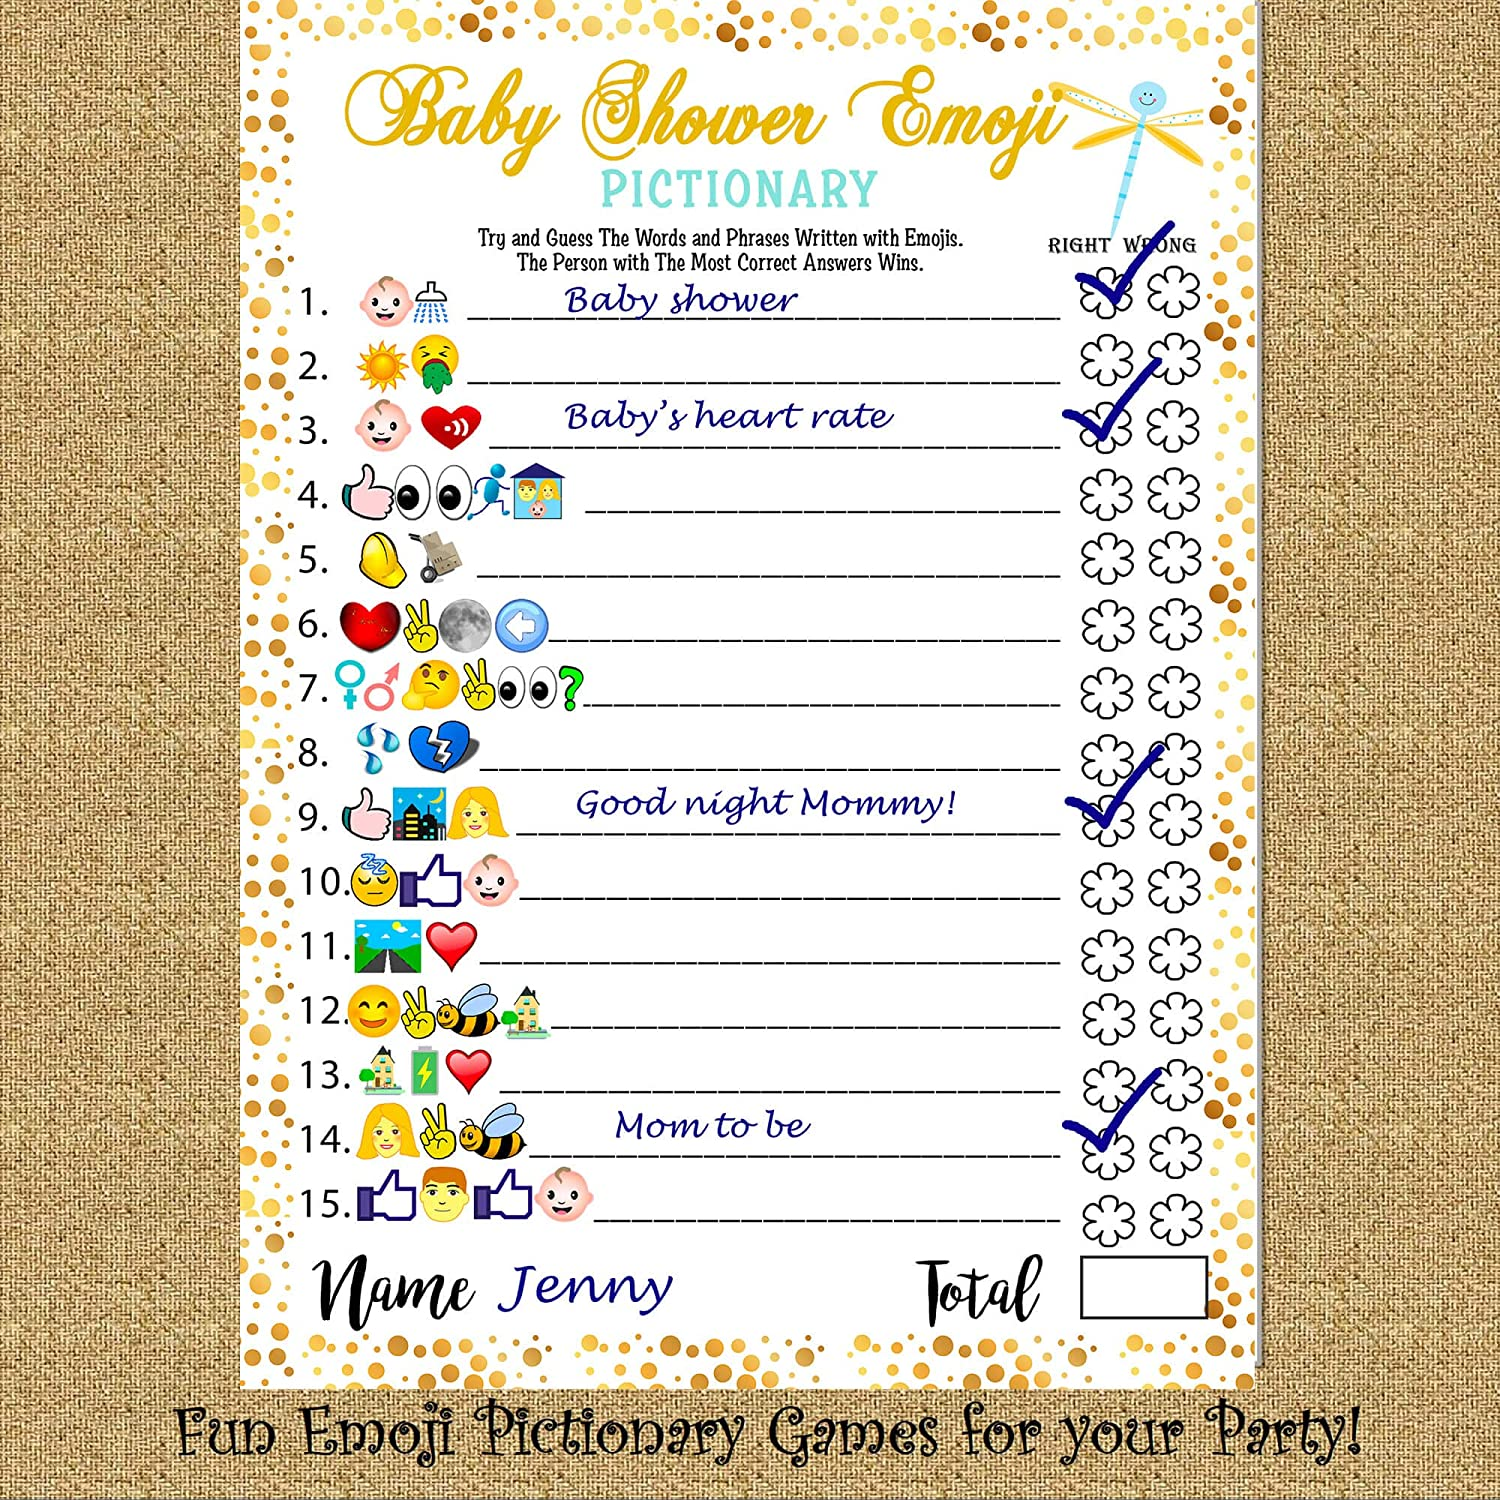 Amazon Com Baby Shower Games 40 Cards Emoji Pictionary Fun